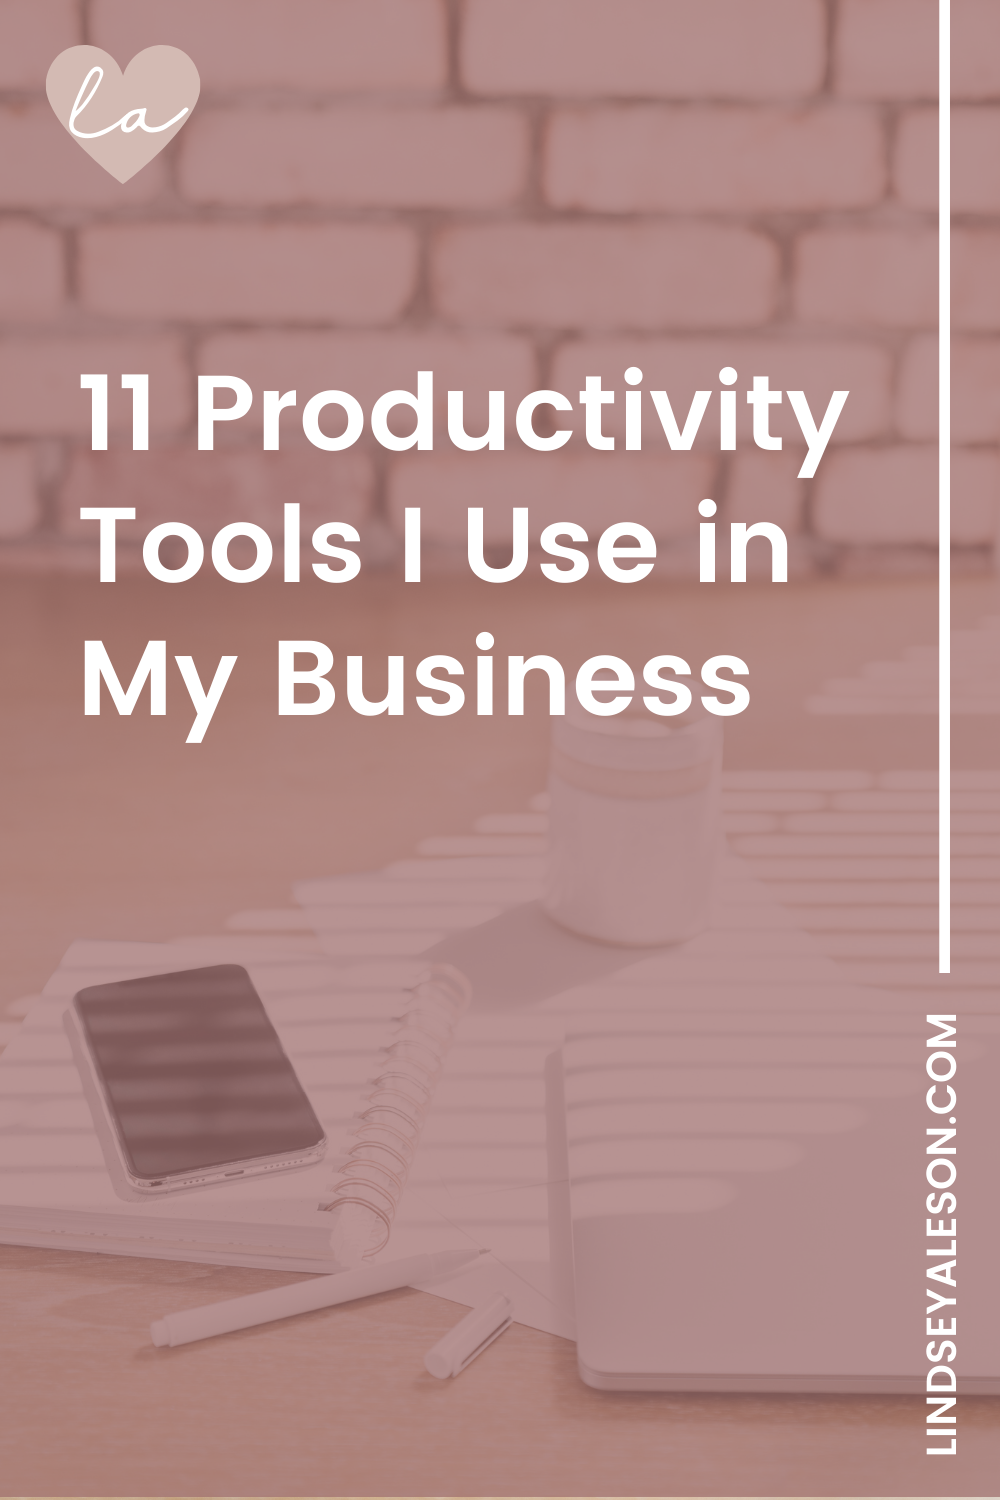 11 Productivity Tools I Use in My Business